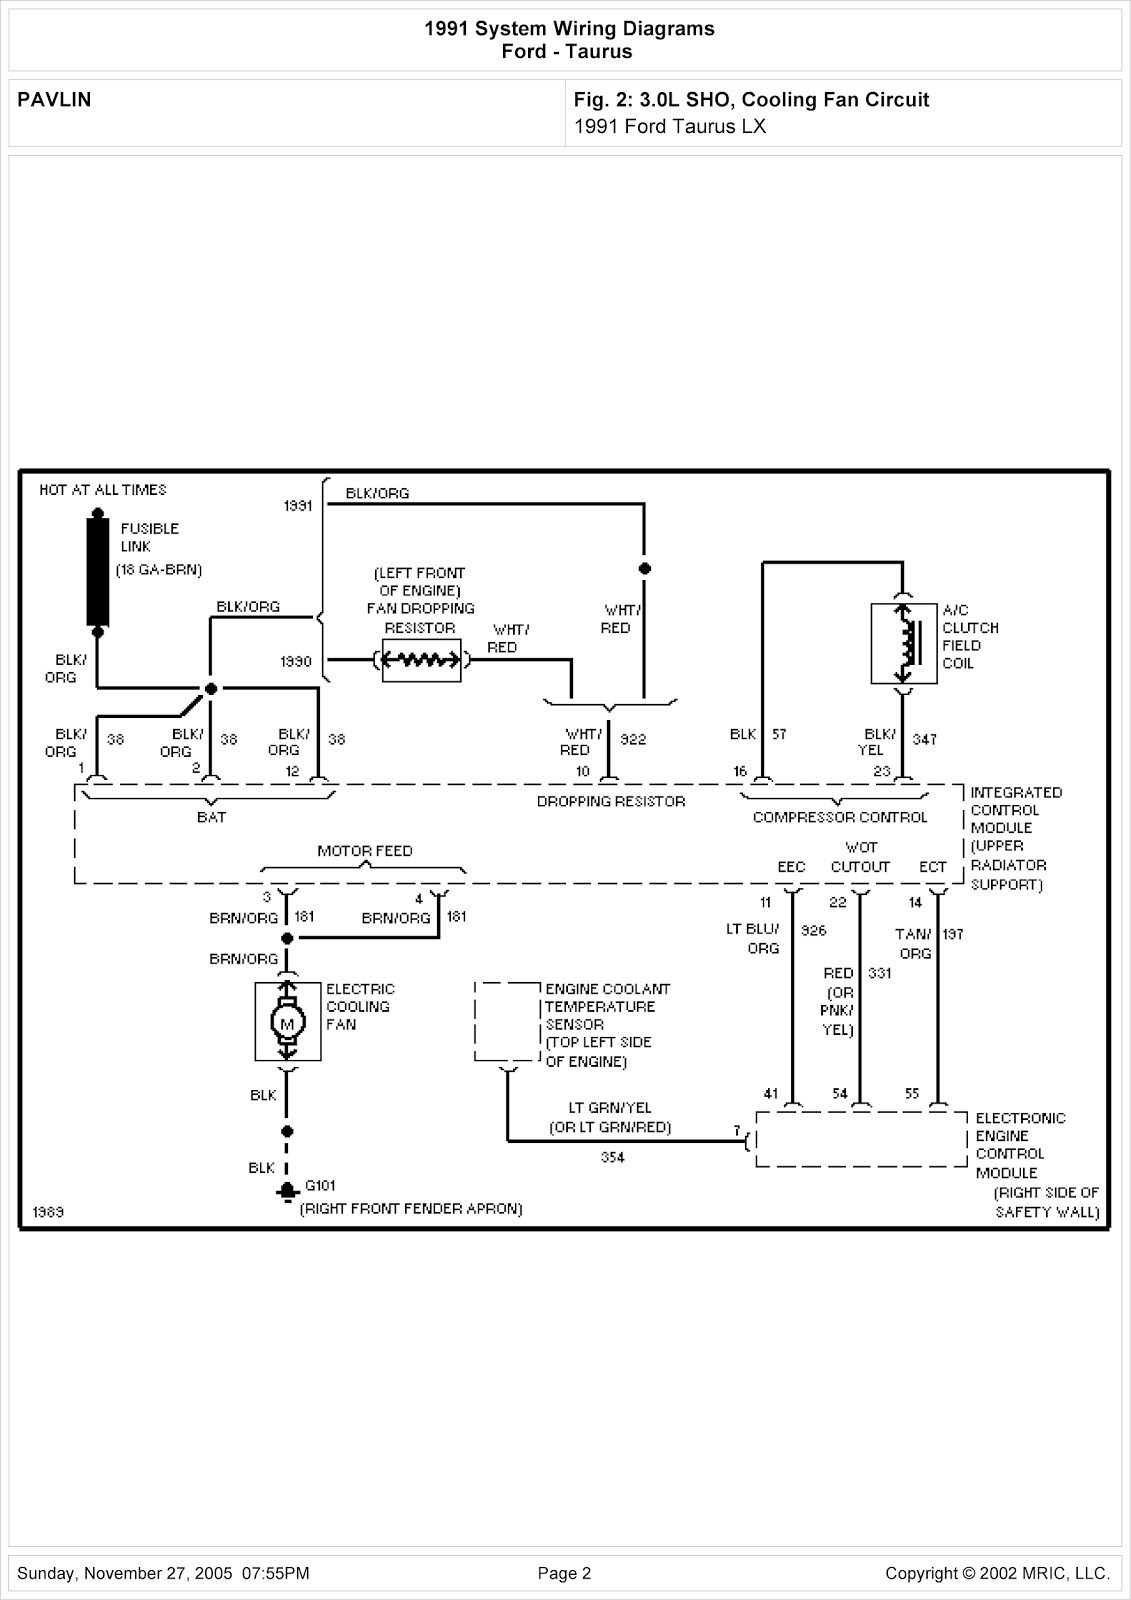 gl break sensor wiring diagram 1999 ford taurus system    wiring       diagram    cooling fan circuit  1999 ford taurus system    wiring       diagram    cooling fan circuit